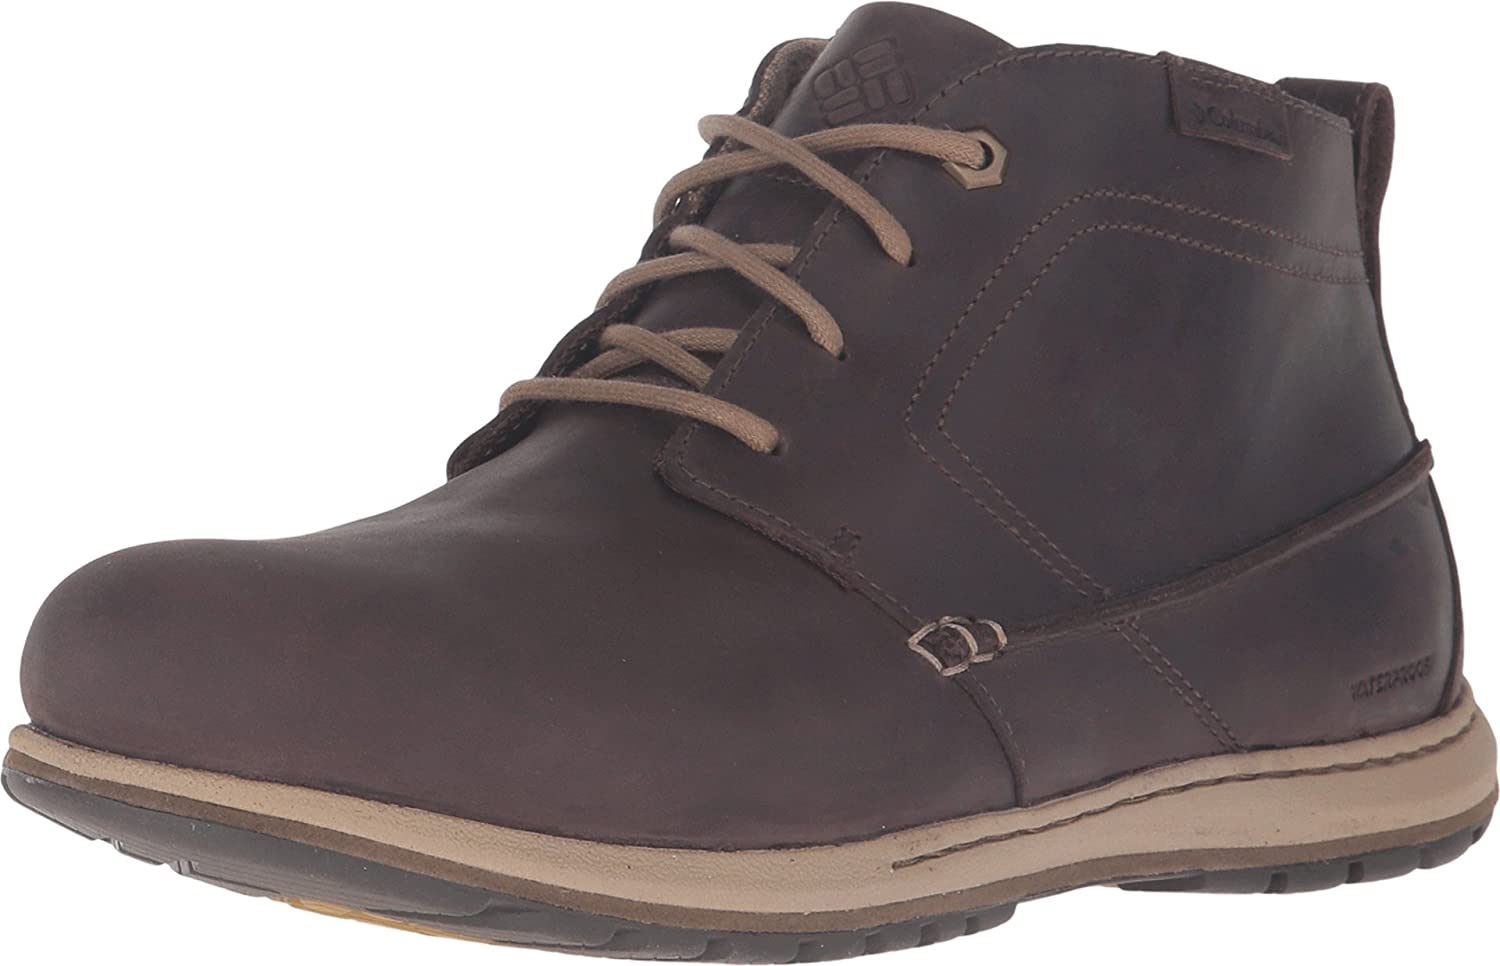 Columbia Men's Davenport Chukka Waterproof Lthr Wide-Big Cordovan, Prairie Sand